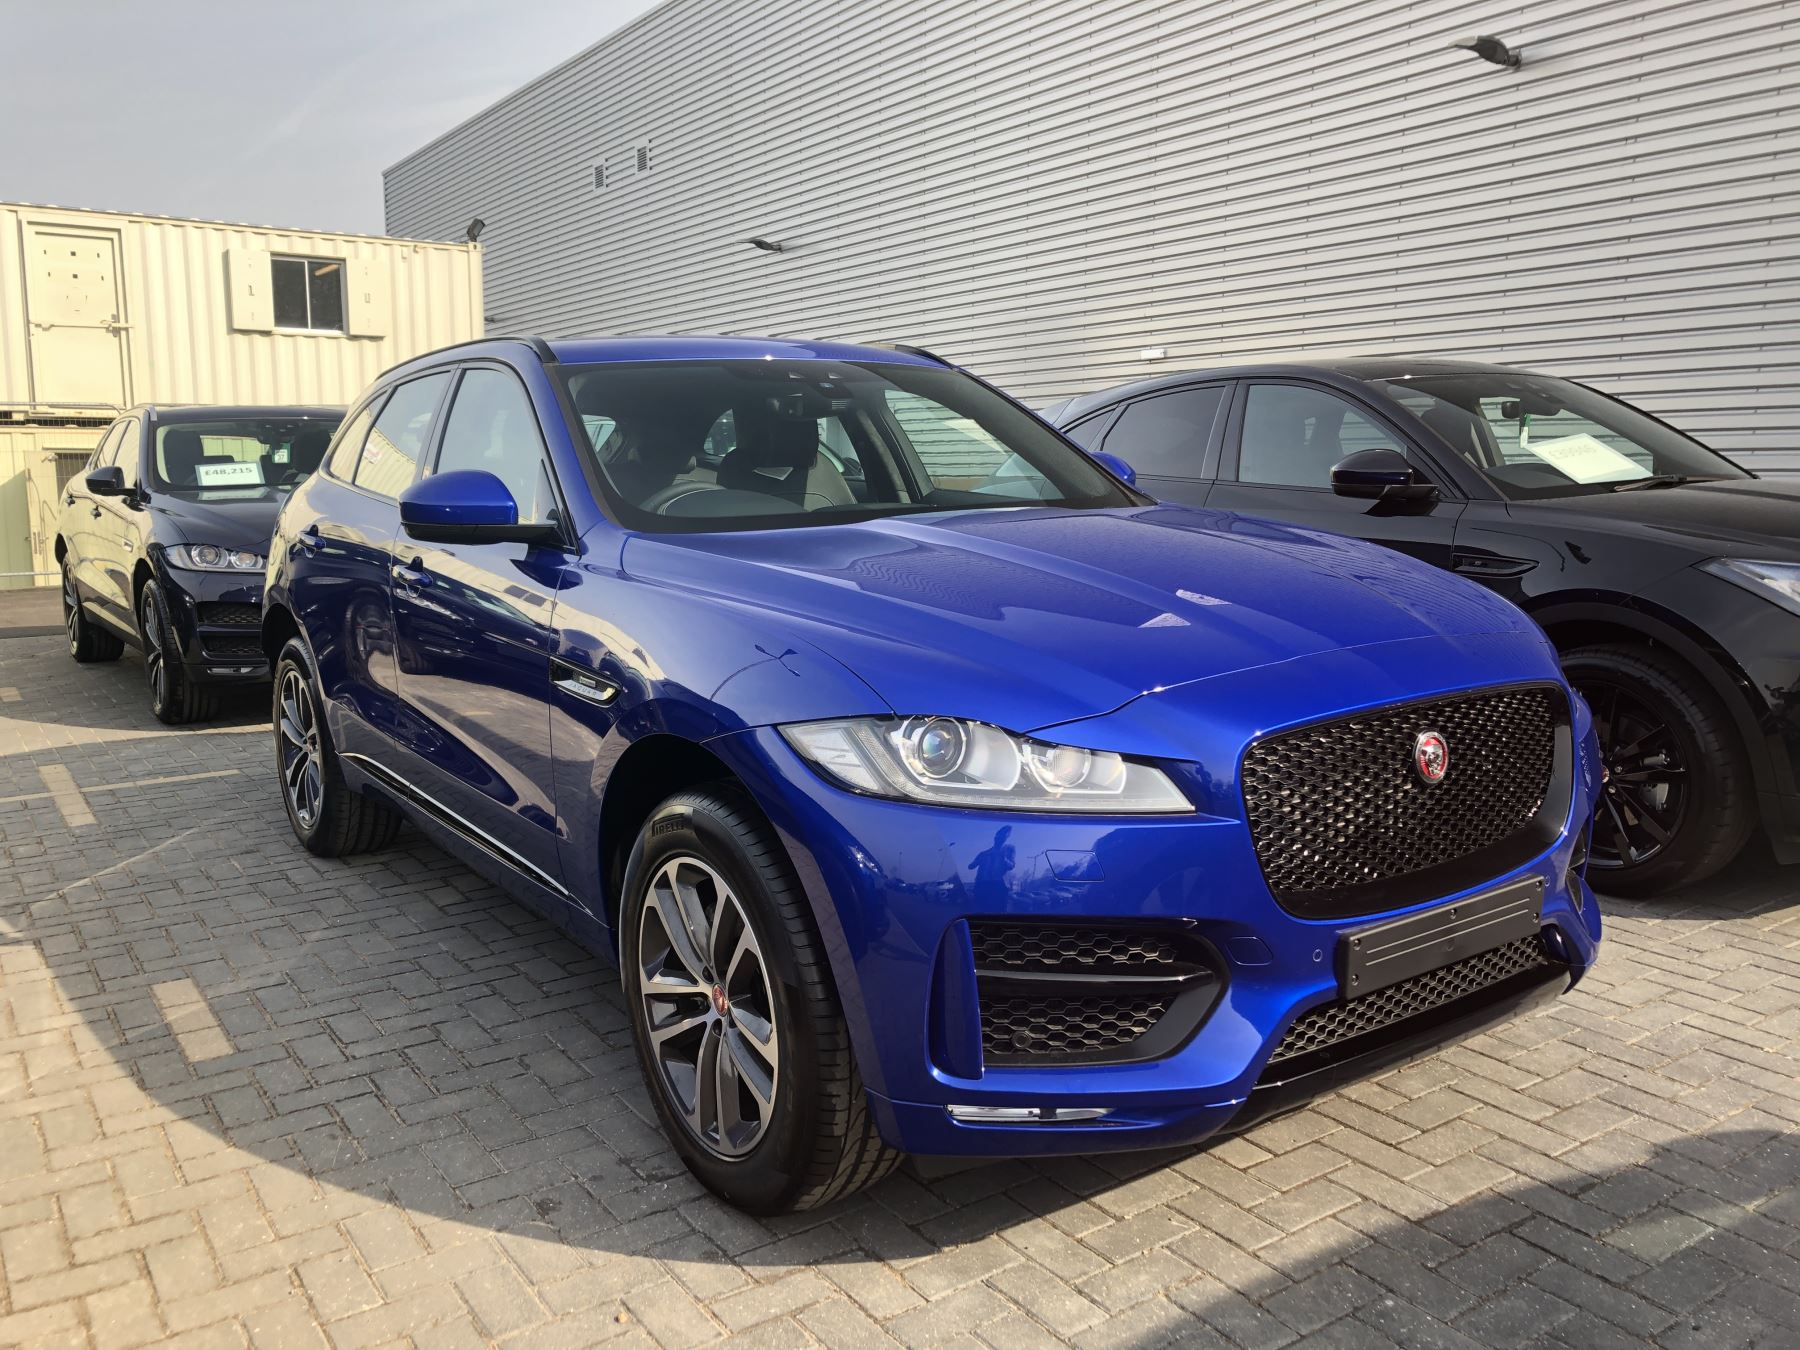 Best Koenigsegg New Jaguar F Pace 2 0 R Sport Awd Automatic 5 Door Estate 17my Available From Jaguar Barnet